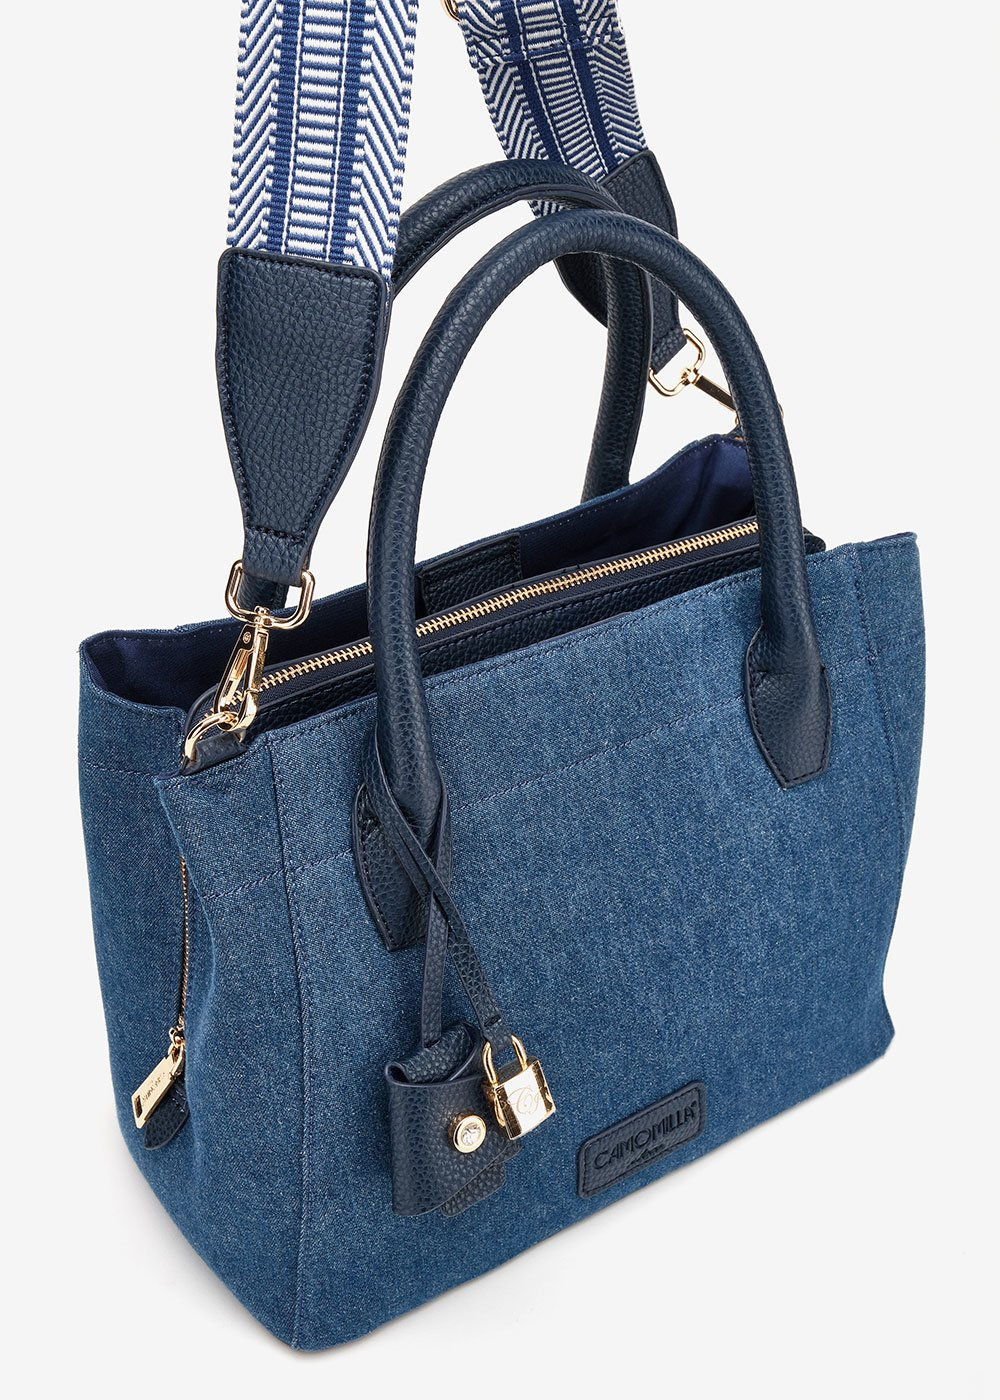 Borsa Berty in denim  - Avion - Donna